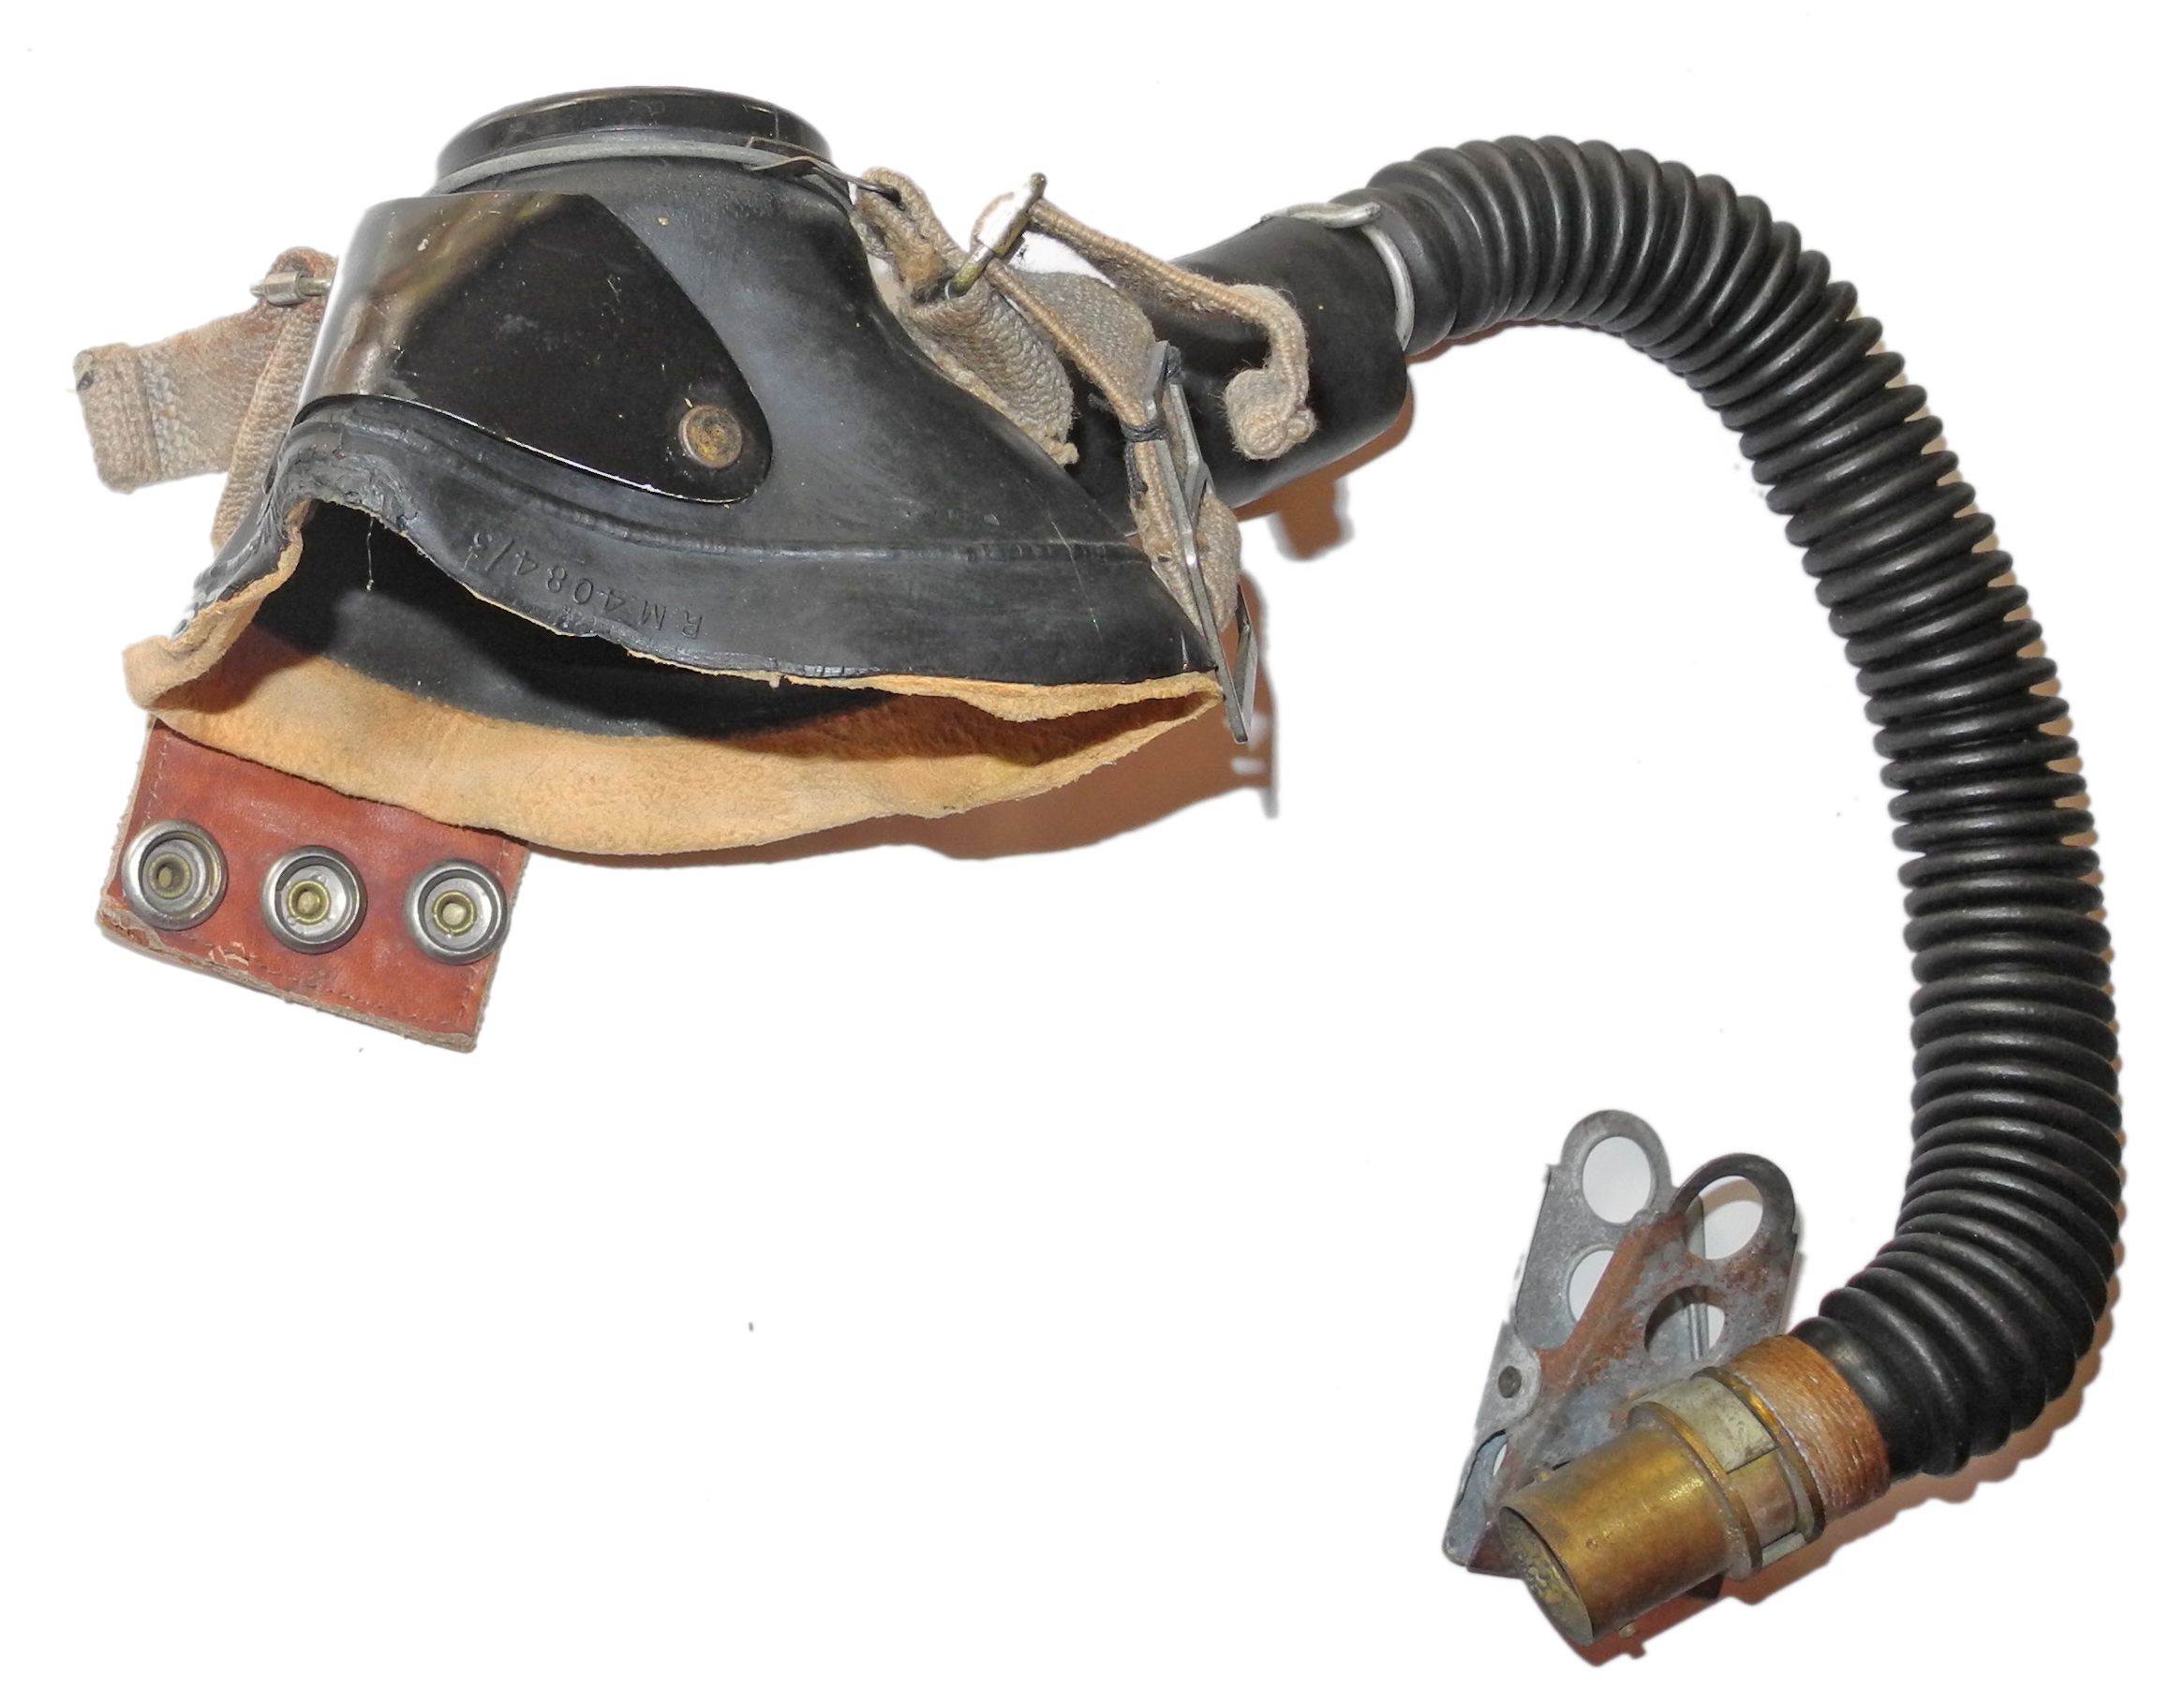 RAF Type E* oxygen mask with hose